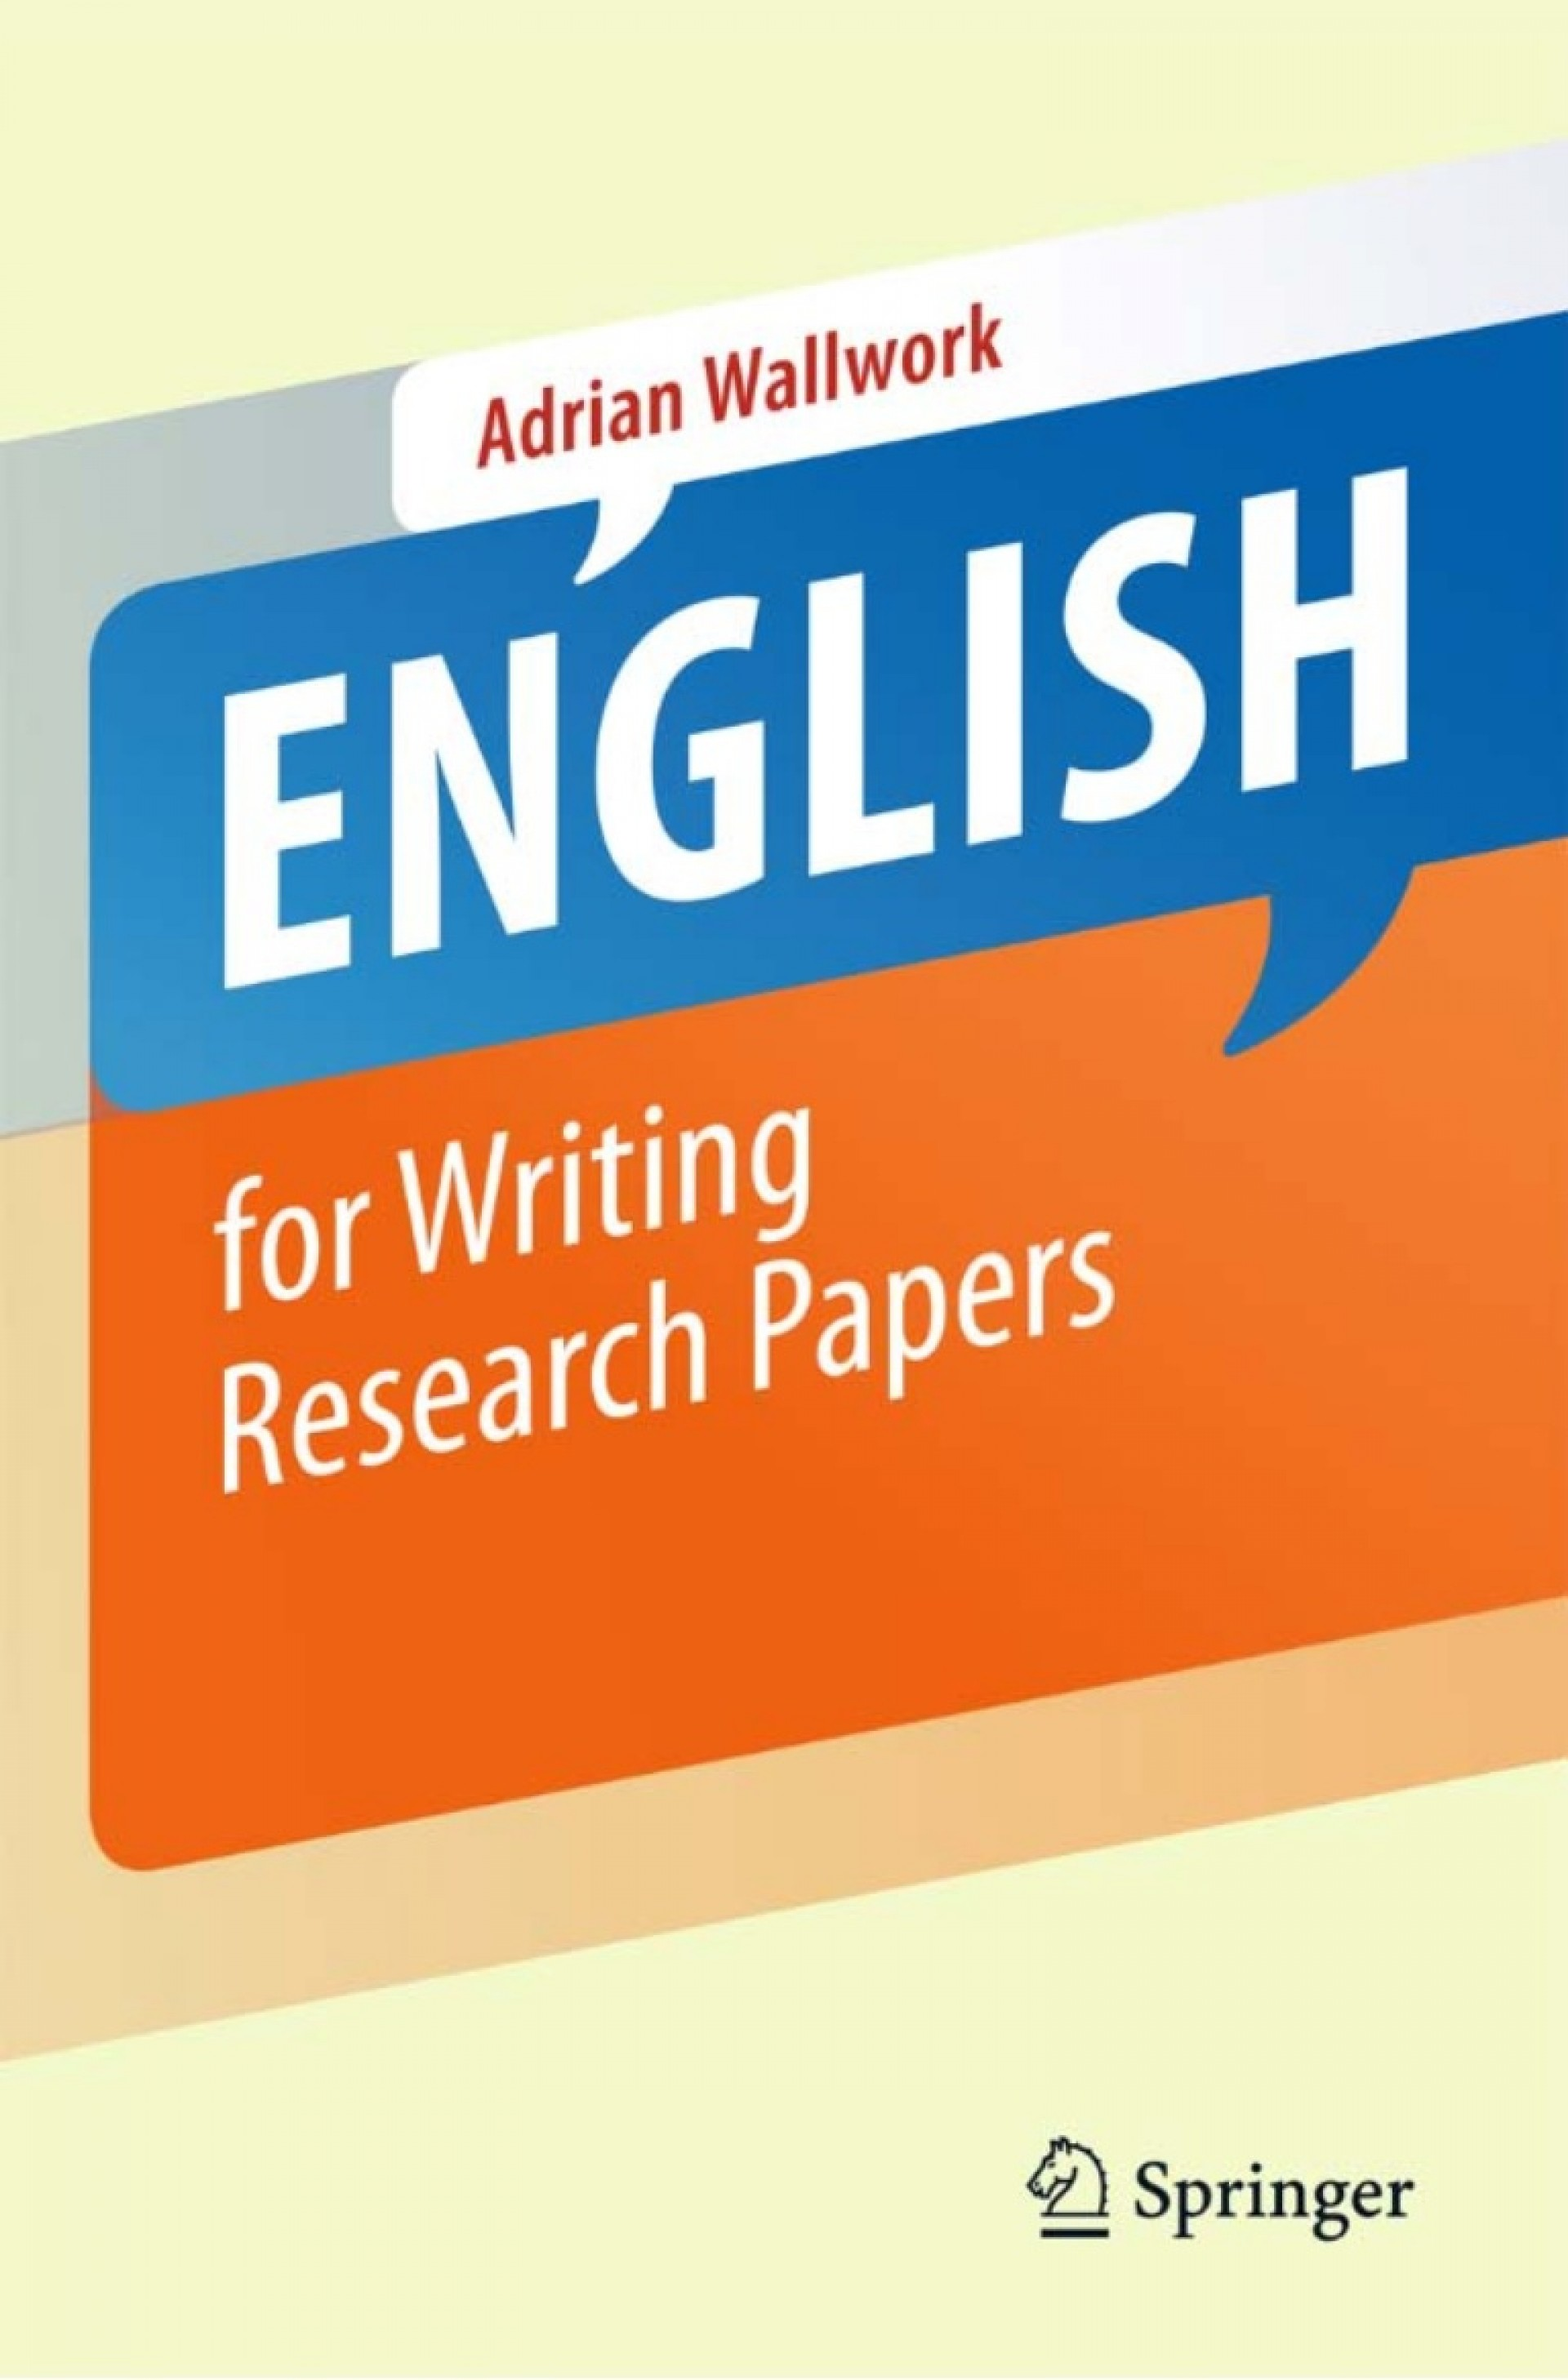 002 Research Paper Englishforwritingresearchpapers Conversion Gate01 Thumbnail English For Writing Papers Awesome Springer Pdf Useful Phrases - 1920